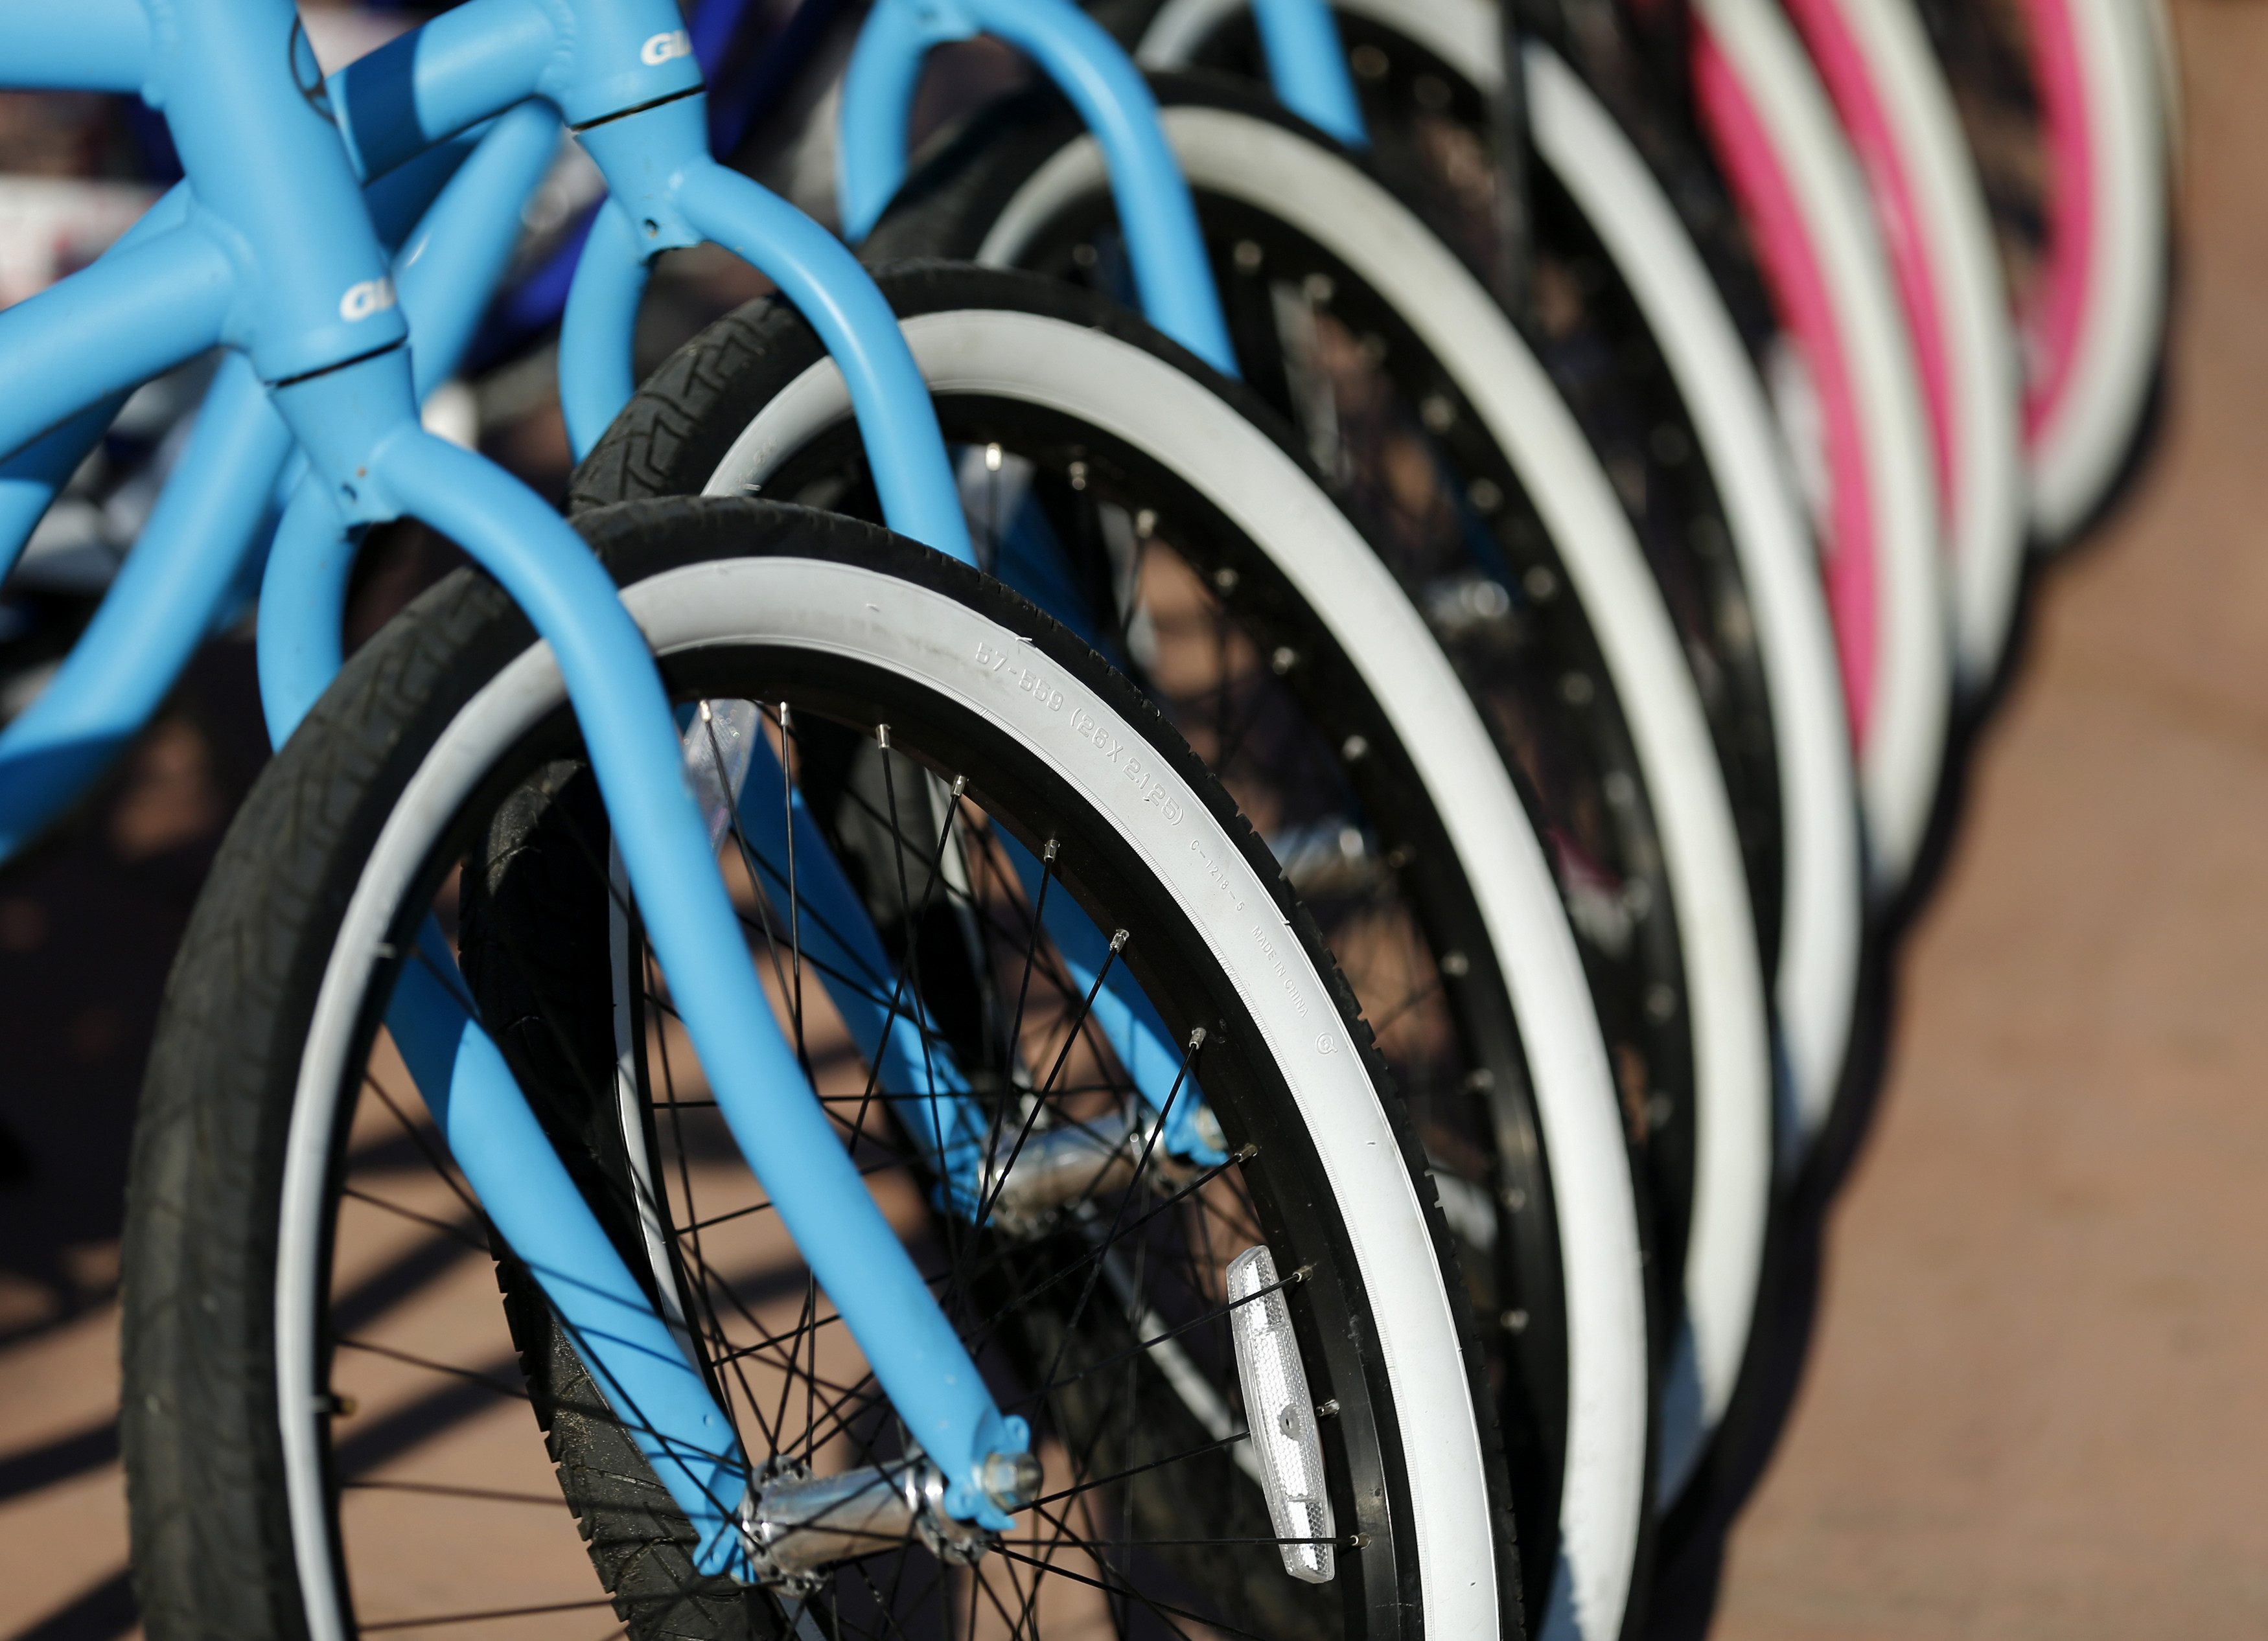 Rental bikes are pictured at a bike rental shop along the beach in Oceanside, California